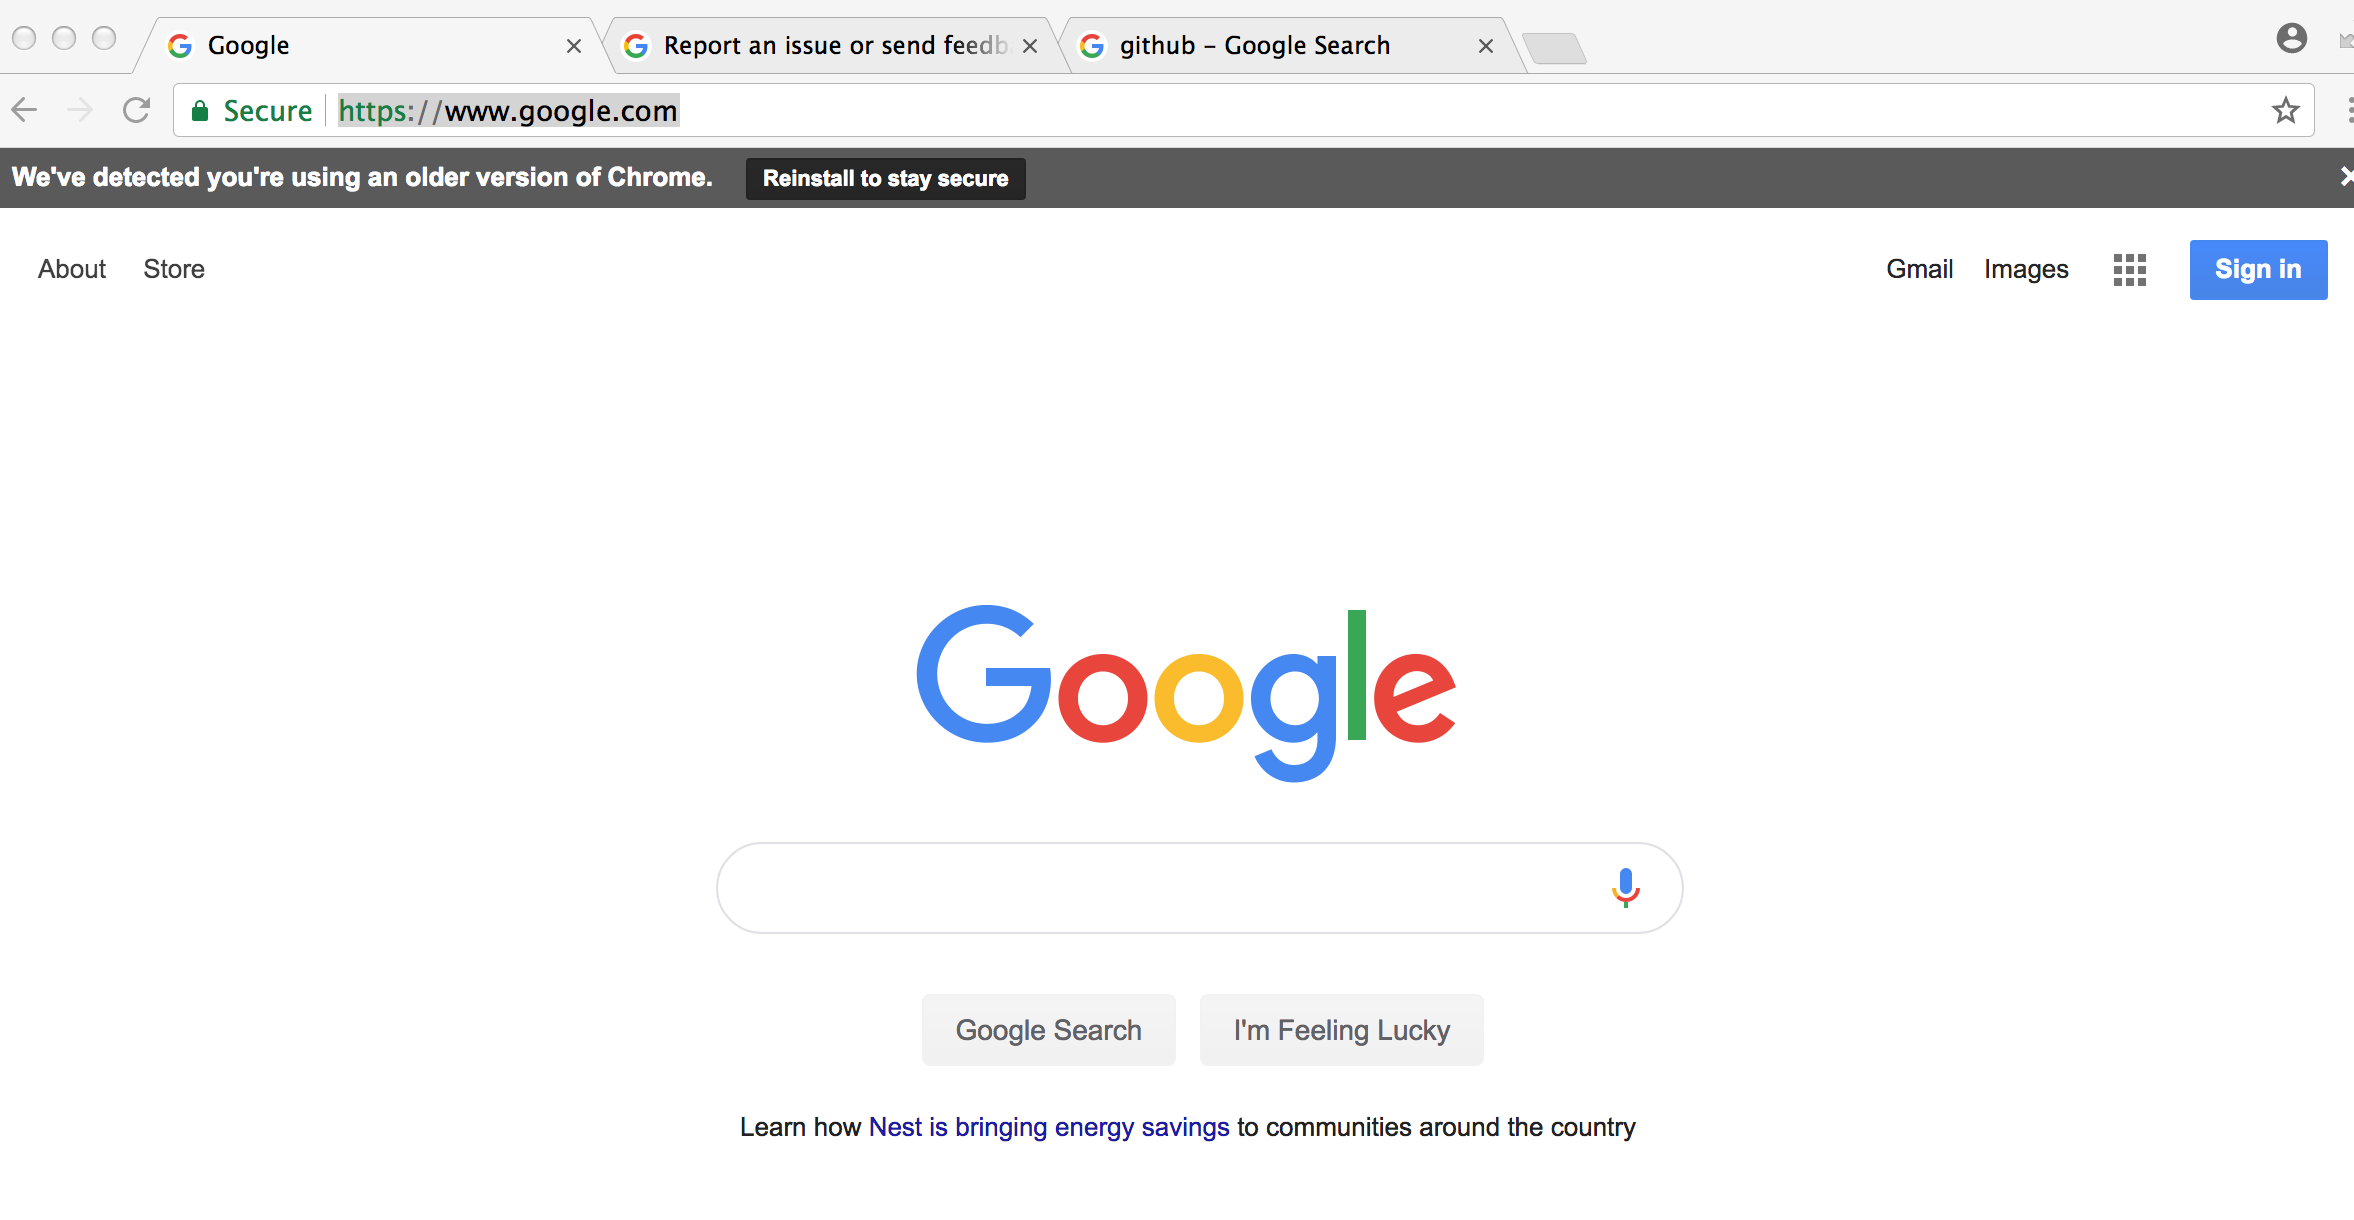 Im Getting A Suspicious Outdated Version Of Chrome Gray Bar At